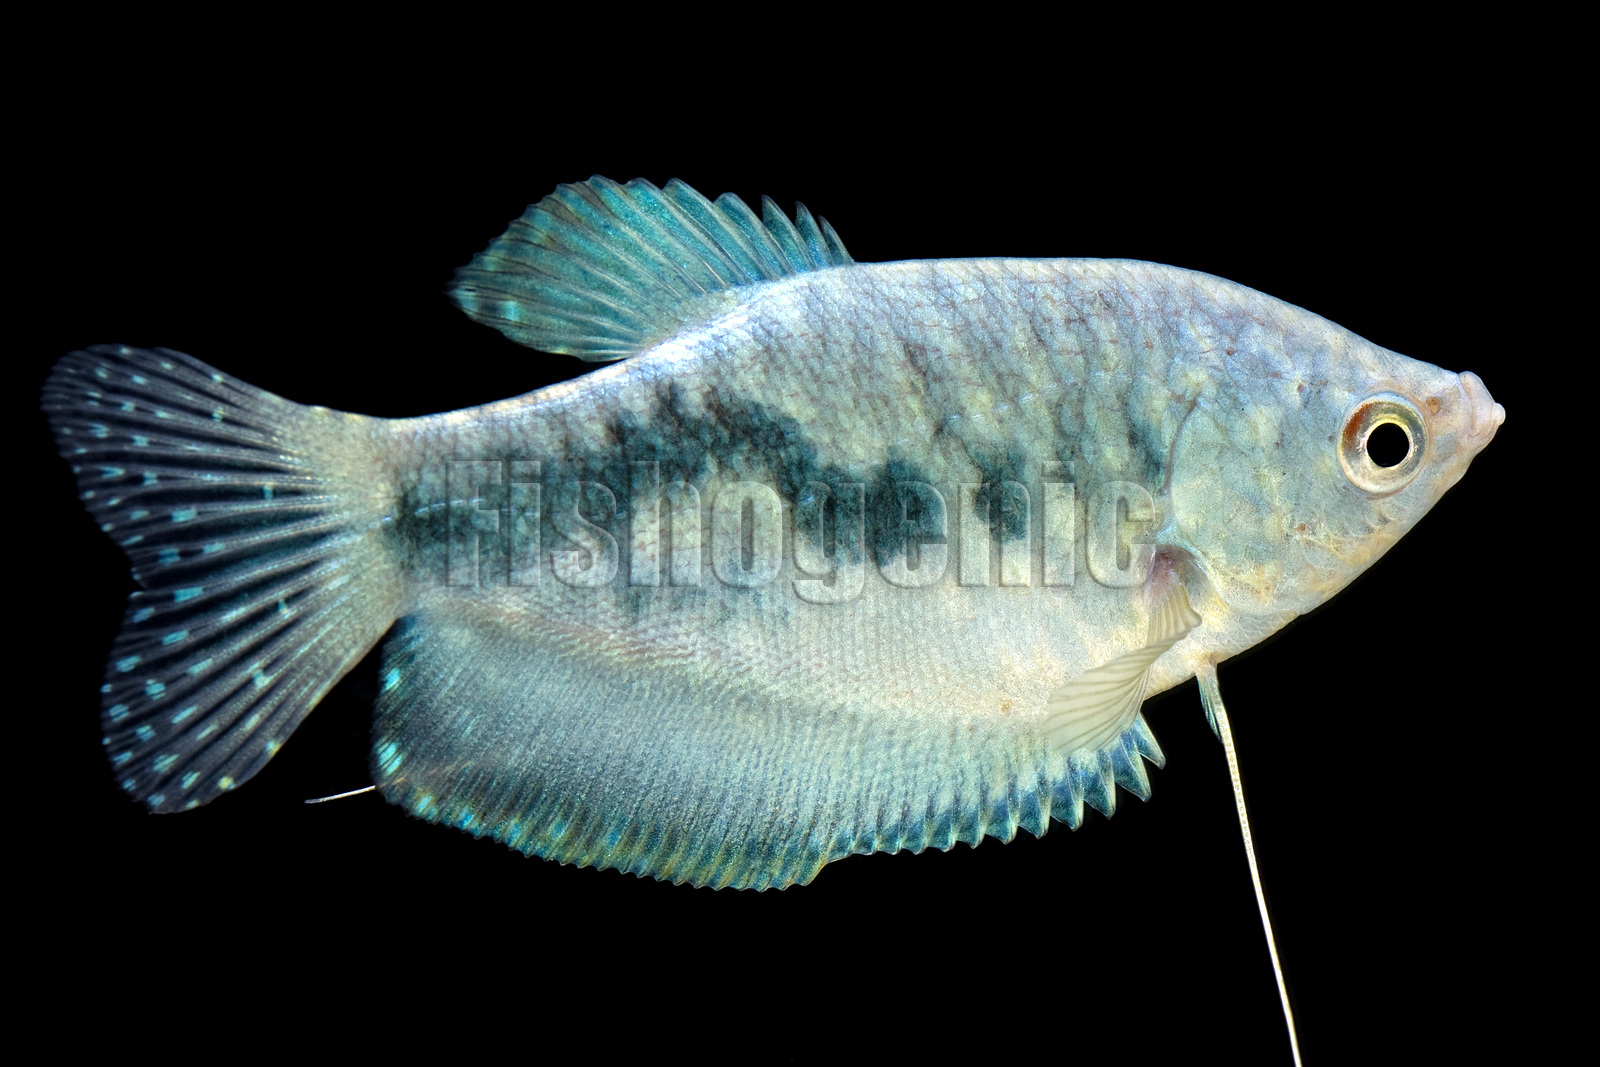 Blue gourami gallery fishogenic for What fish is this